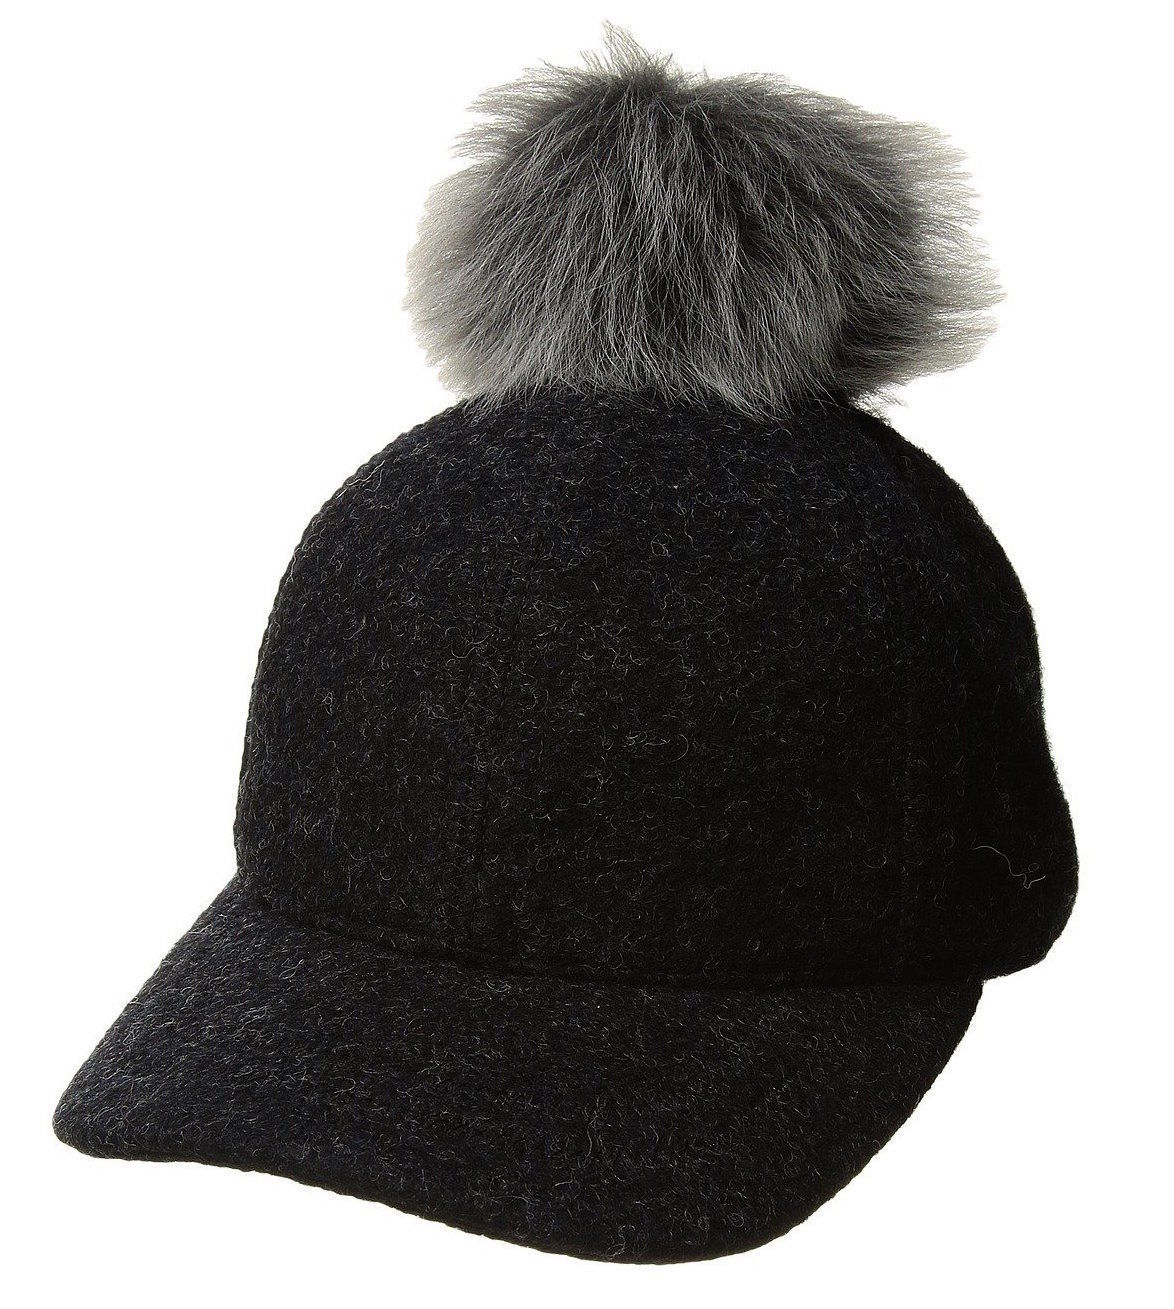 Womens UGG Fabric Baseball Hat with Fur Pom in Black Heather [16120]